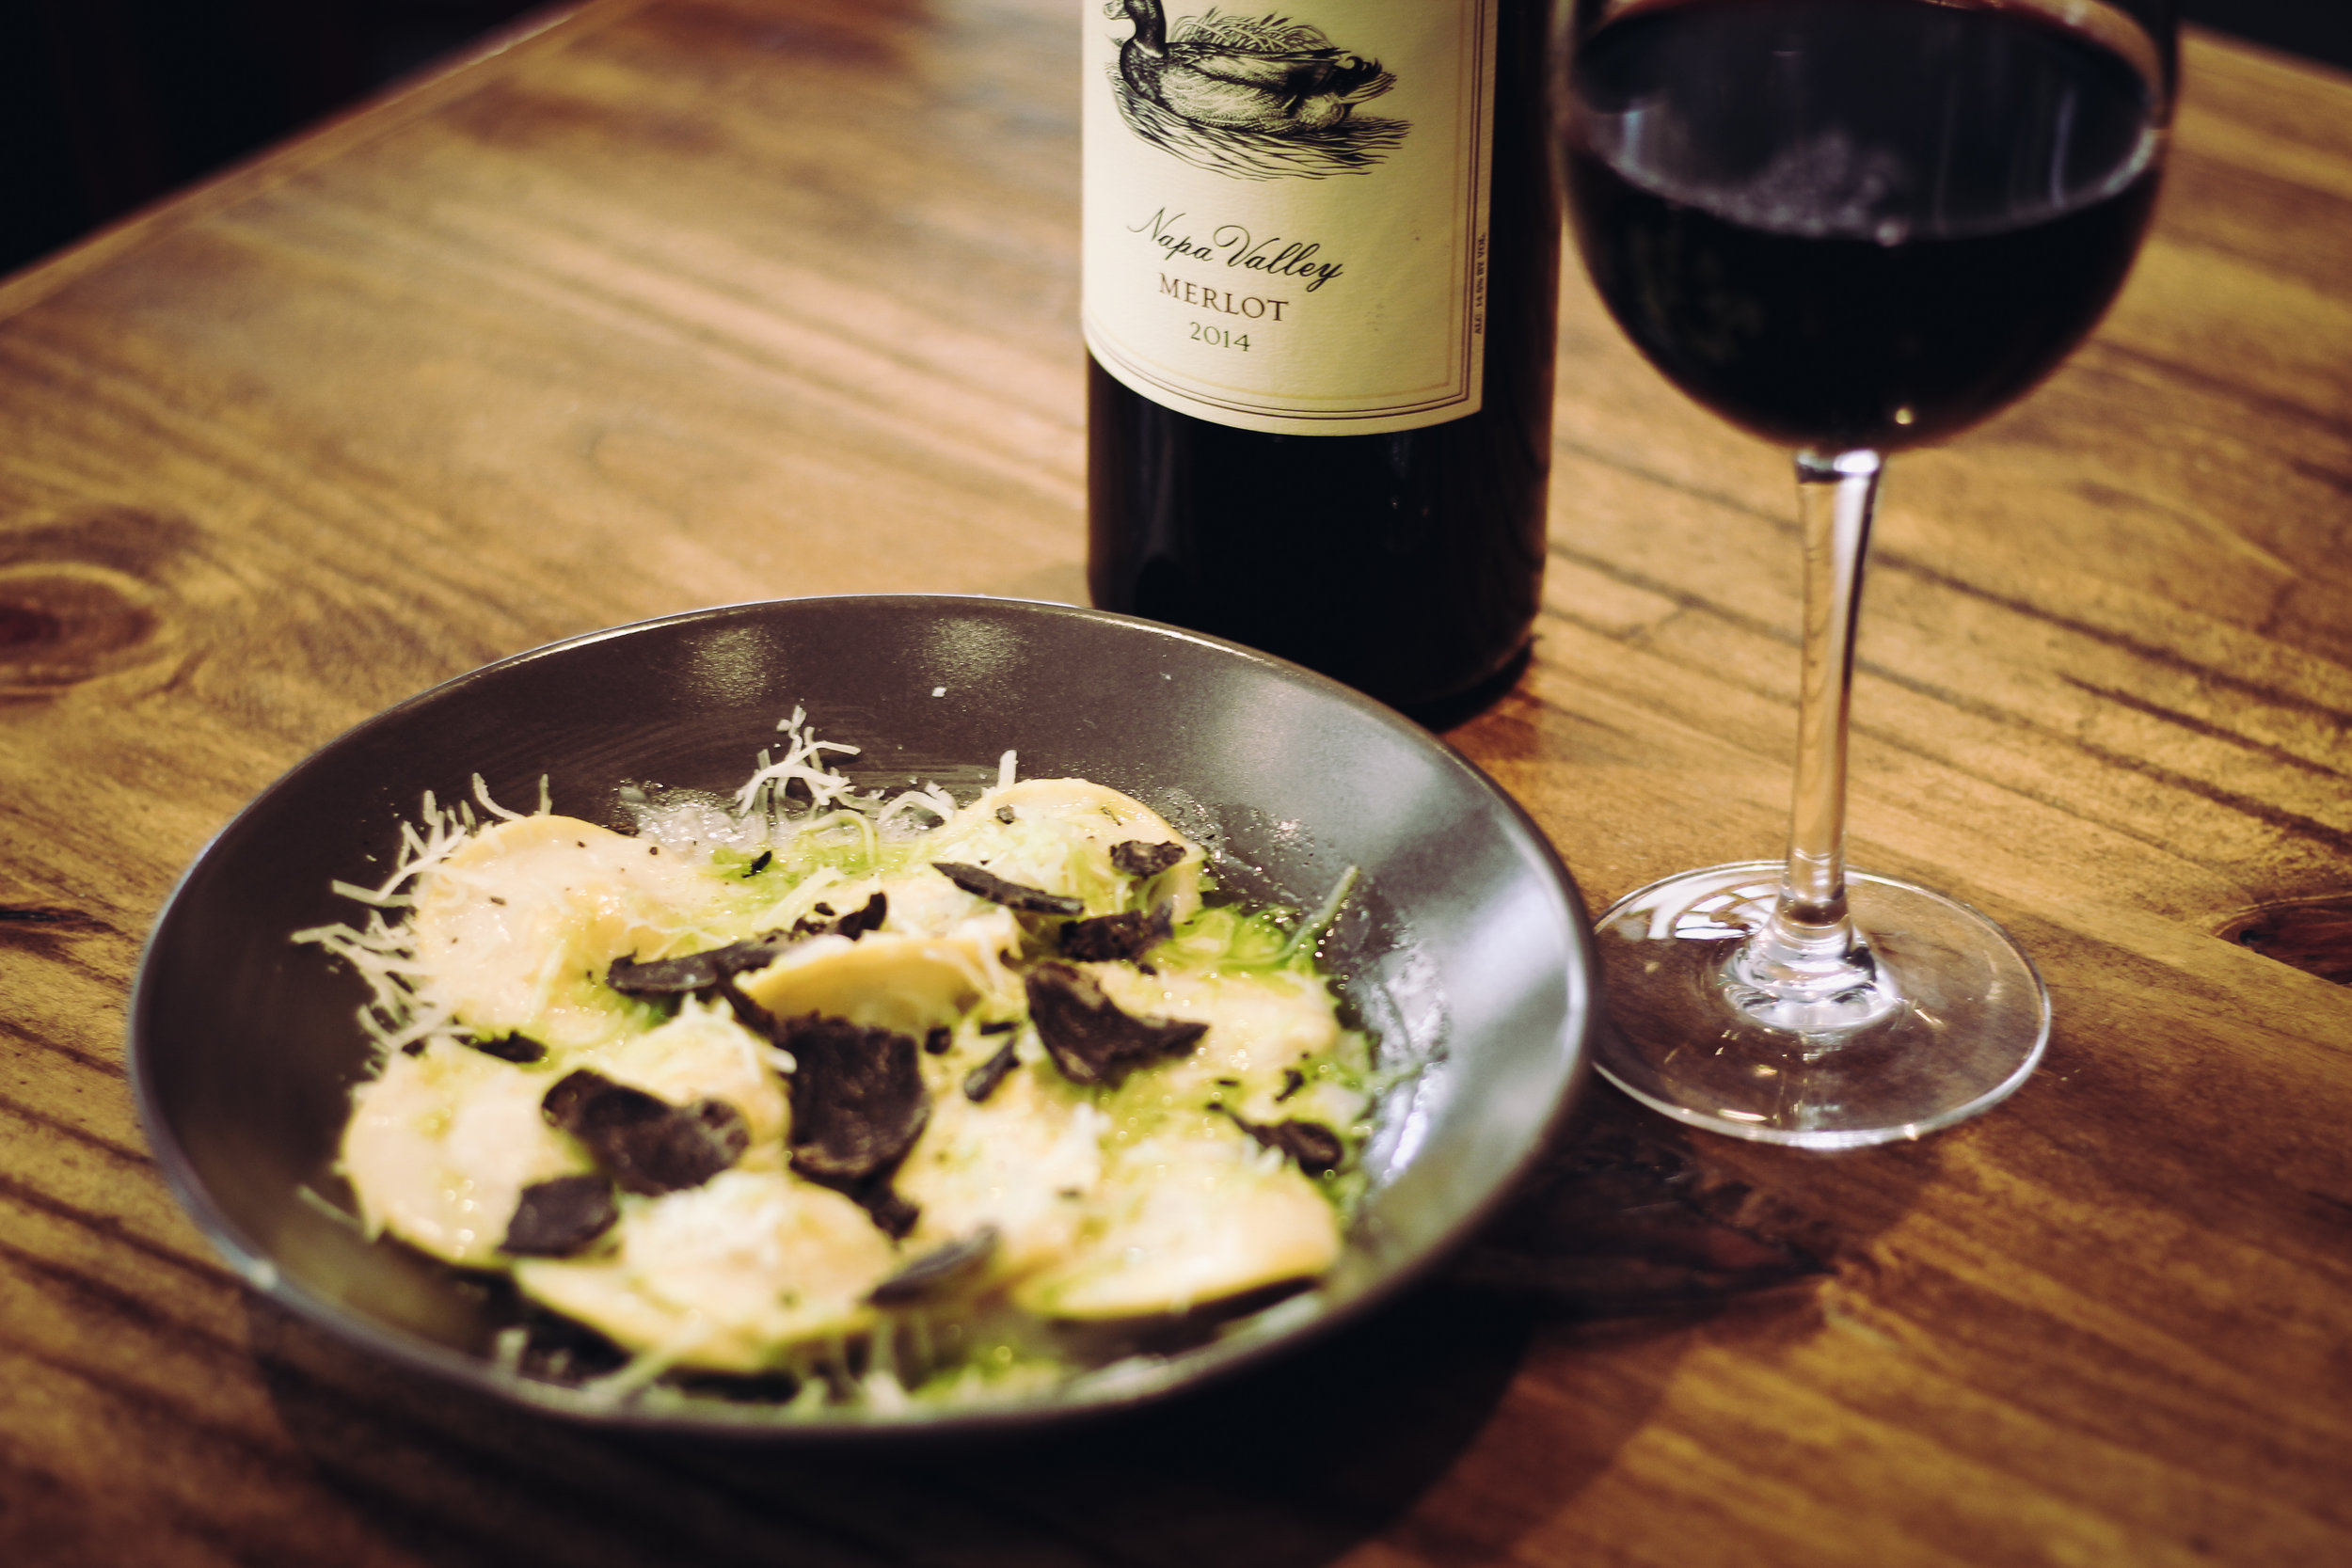 Black truffle ravioli with hand-shaved parmesan. Paired with Merlot.